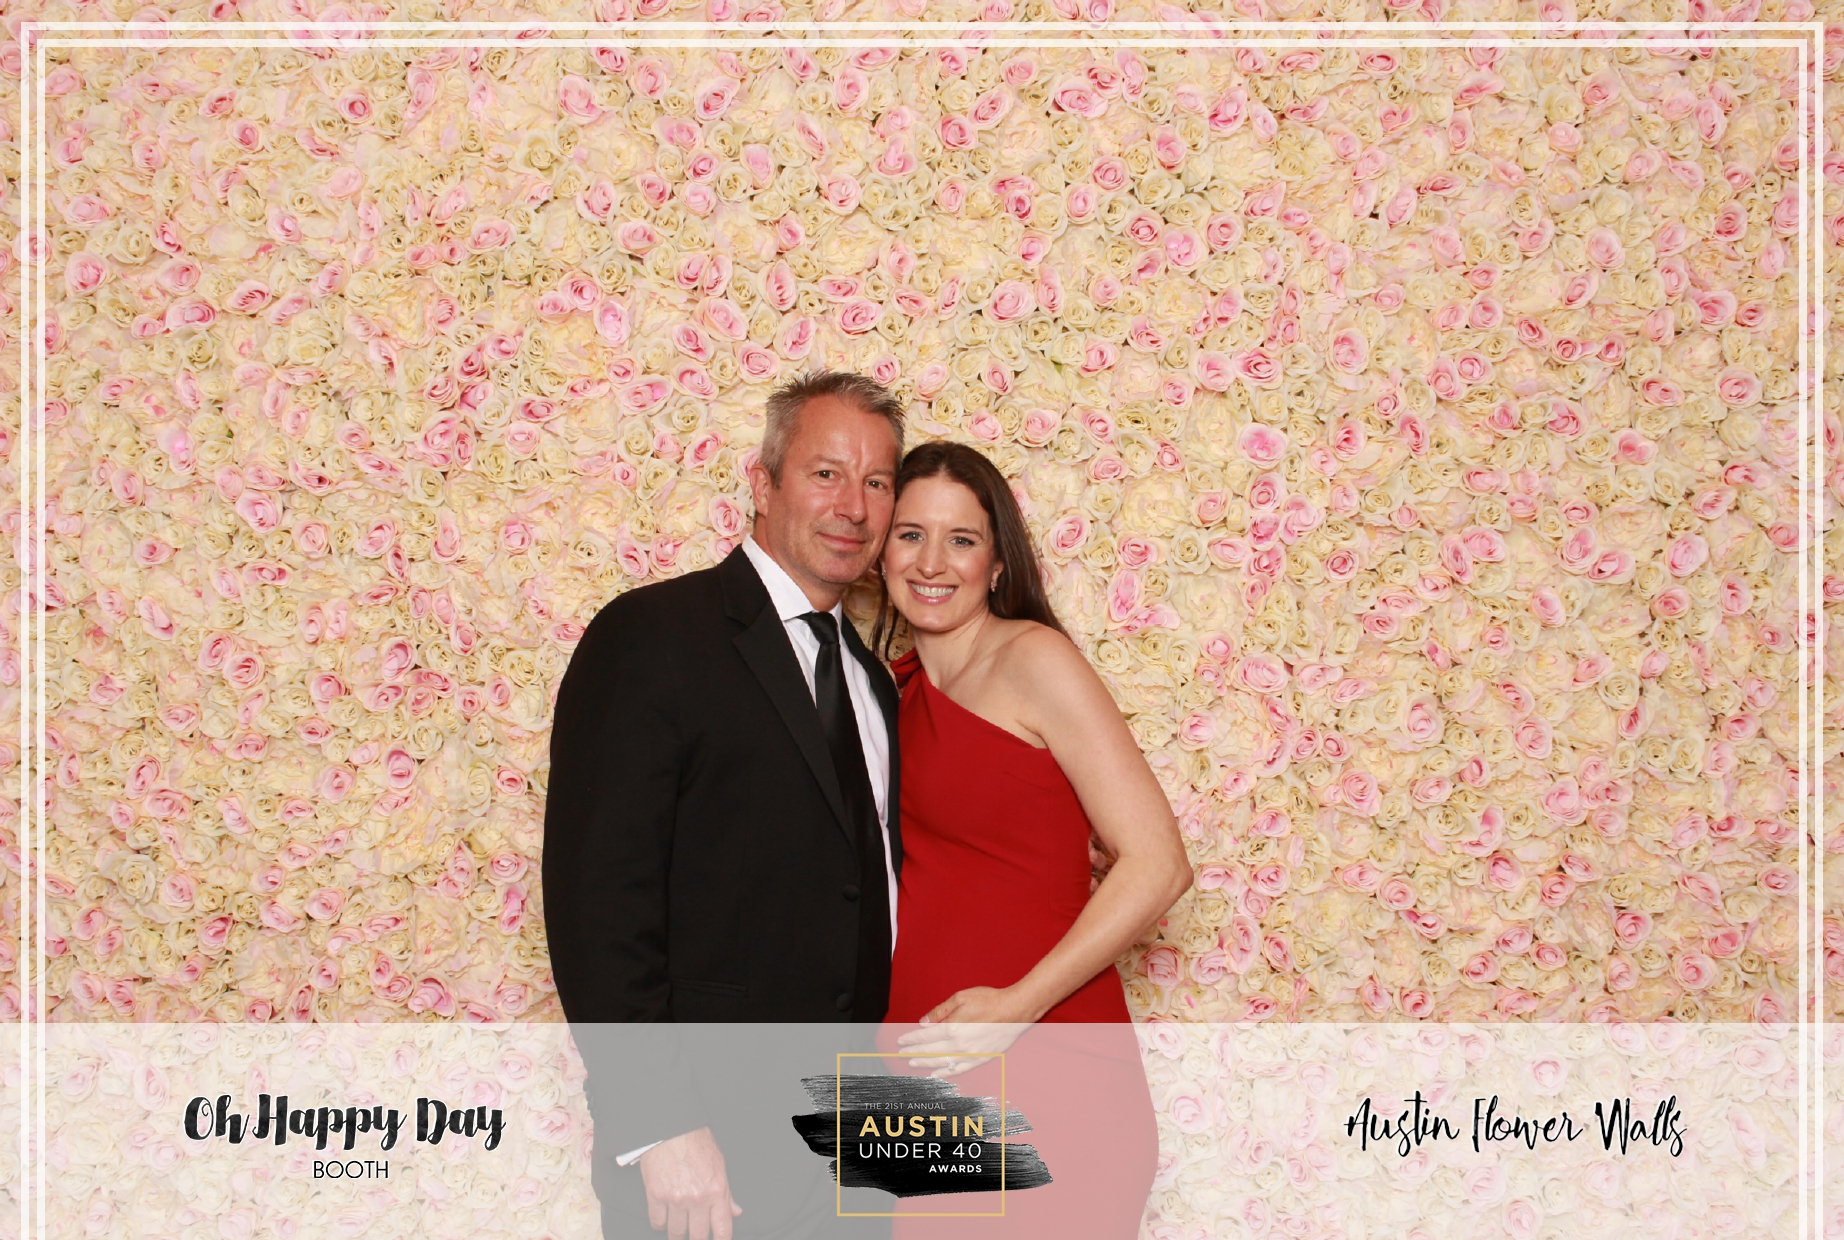 Oh Happy Day Booth - Austin Under 40-143.jpg